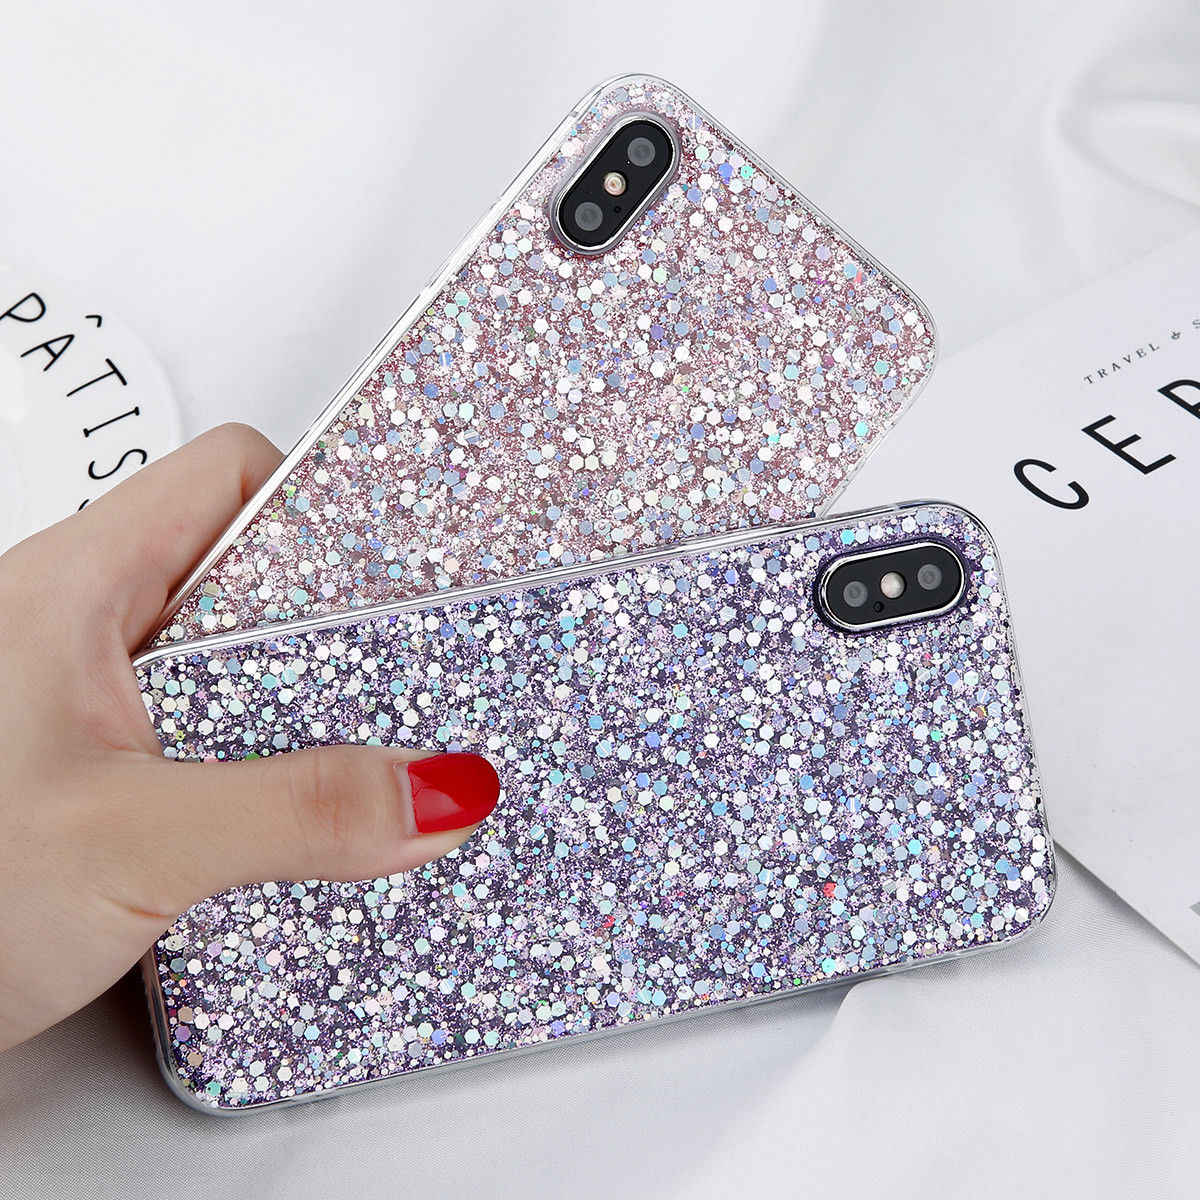 Detail Feedback Questions about NOWAL Bling Sparkle Glitter Case For iPhone  5 6 7 8 Plus XS Max XR Soft TPU Silicone Back Cover For iPhone 5S SE X 6 6S  7 ... a8203a84a8a7